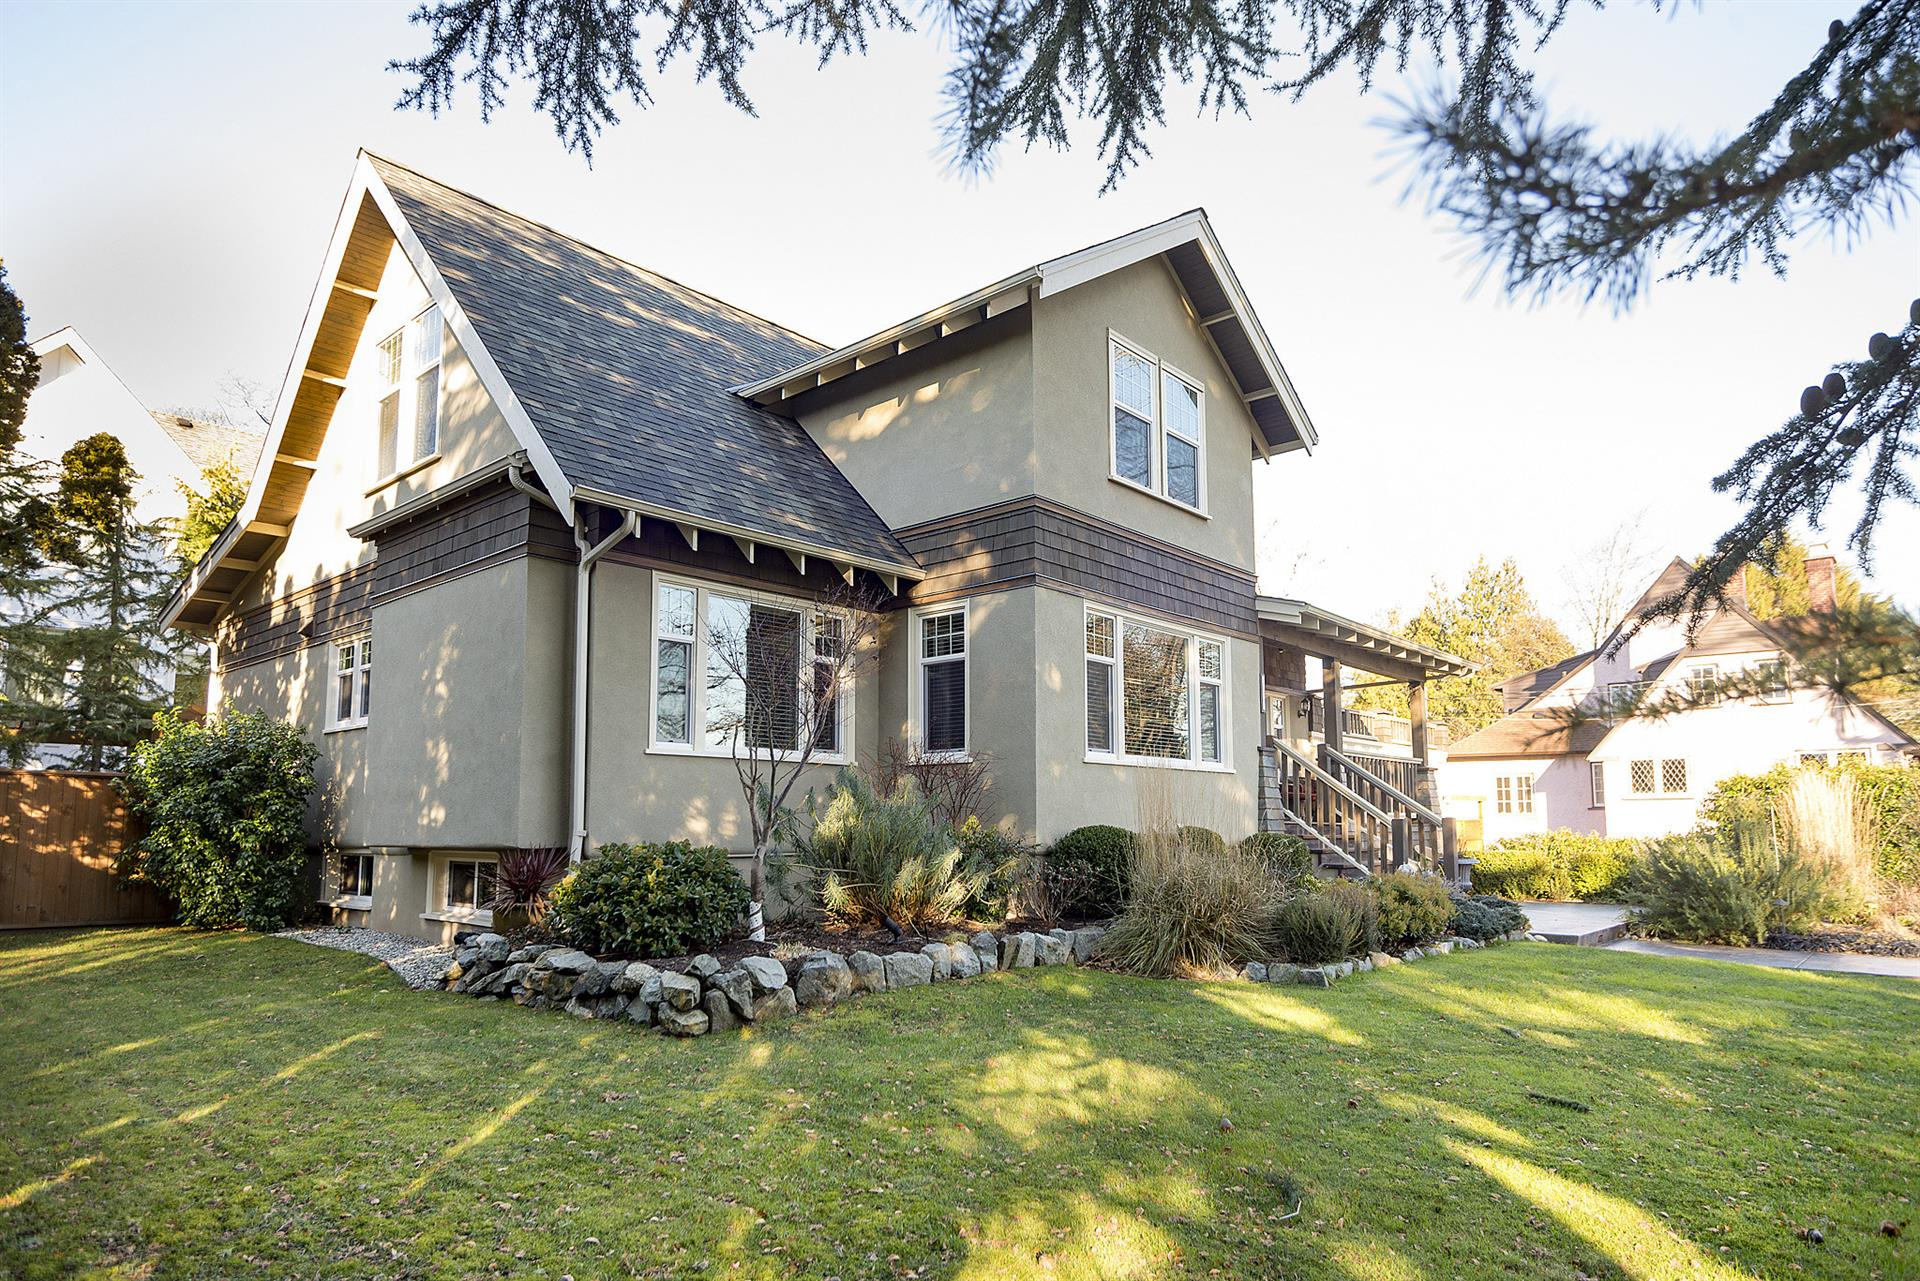 Additional photo for property listing at 1580 Despard Ave Victoria, British Columbia,Kanada